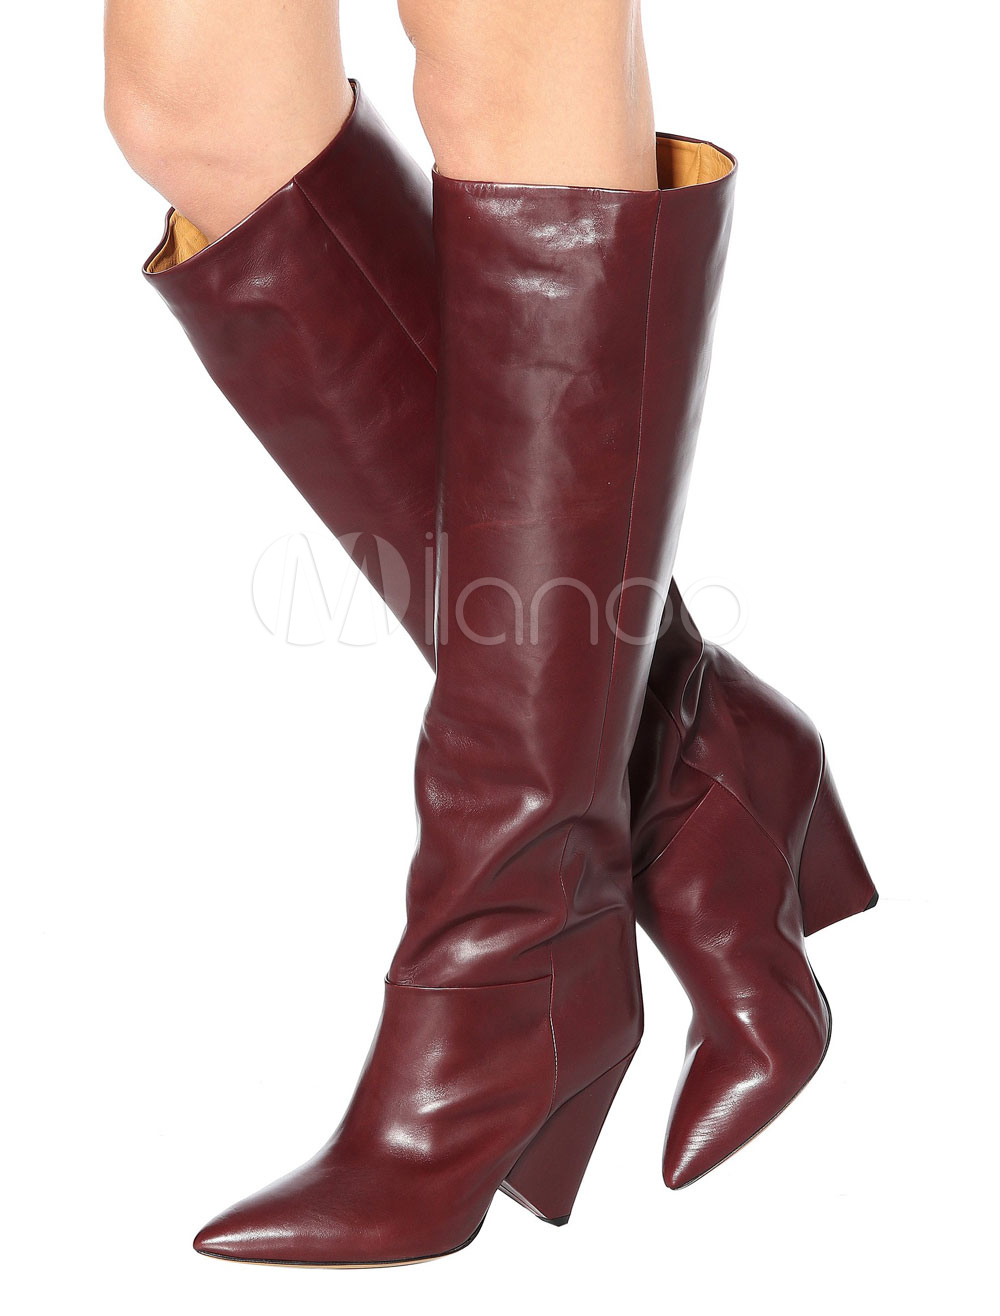 29f8ba917fe ... Women Wide Calf Boots Knee High Boots Burgundy Leather Pointed Toe High  Heel Boots-No. 1. 40%OFF. Color Burgundy